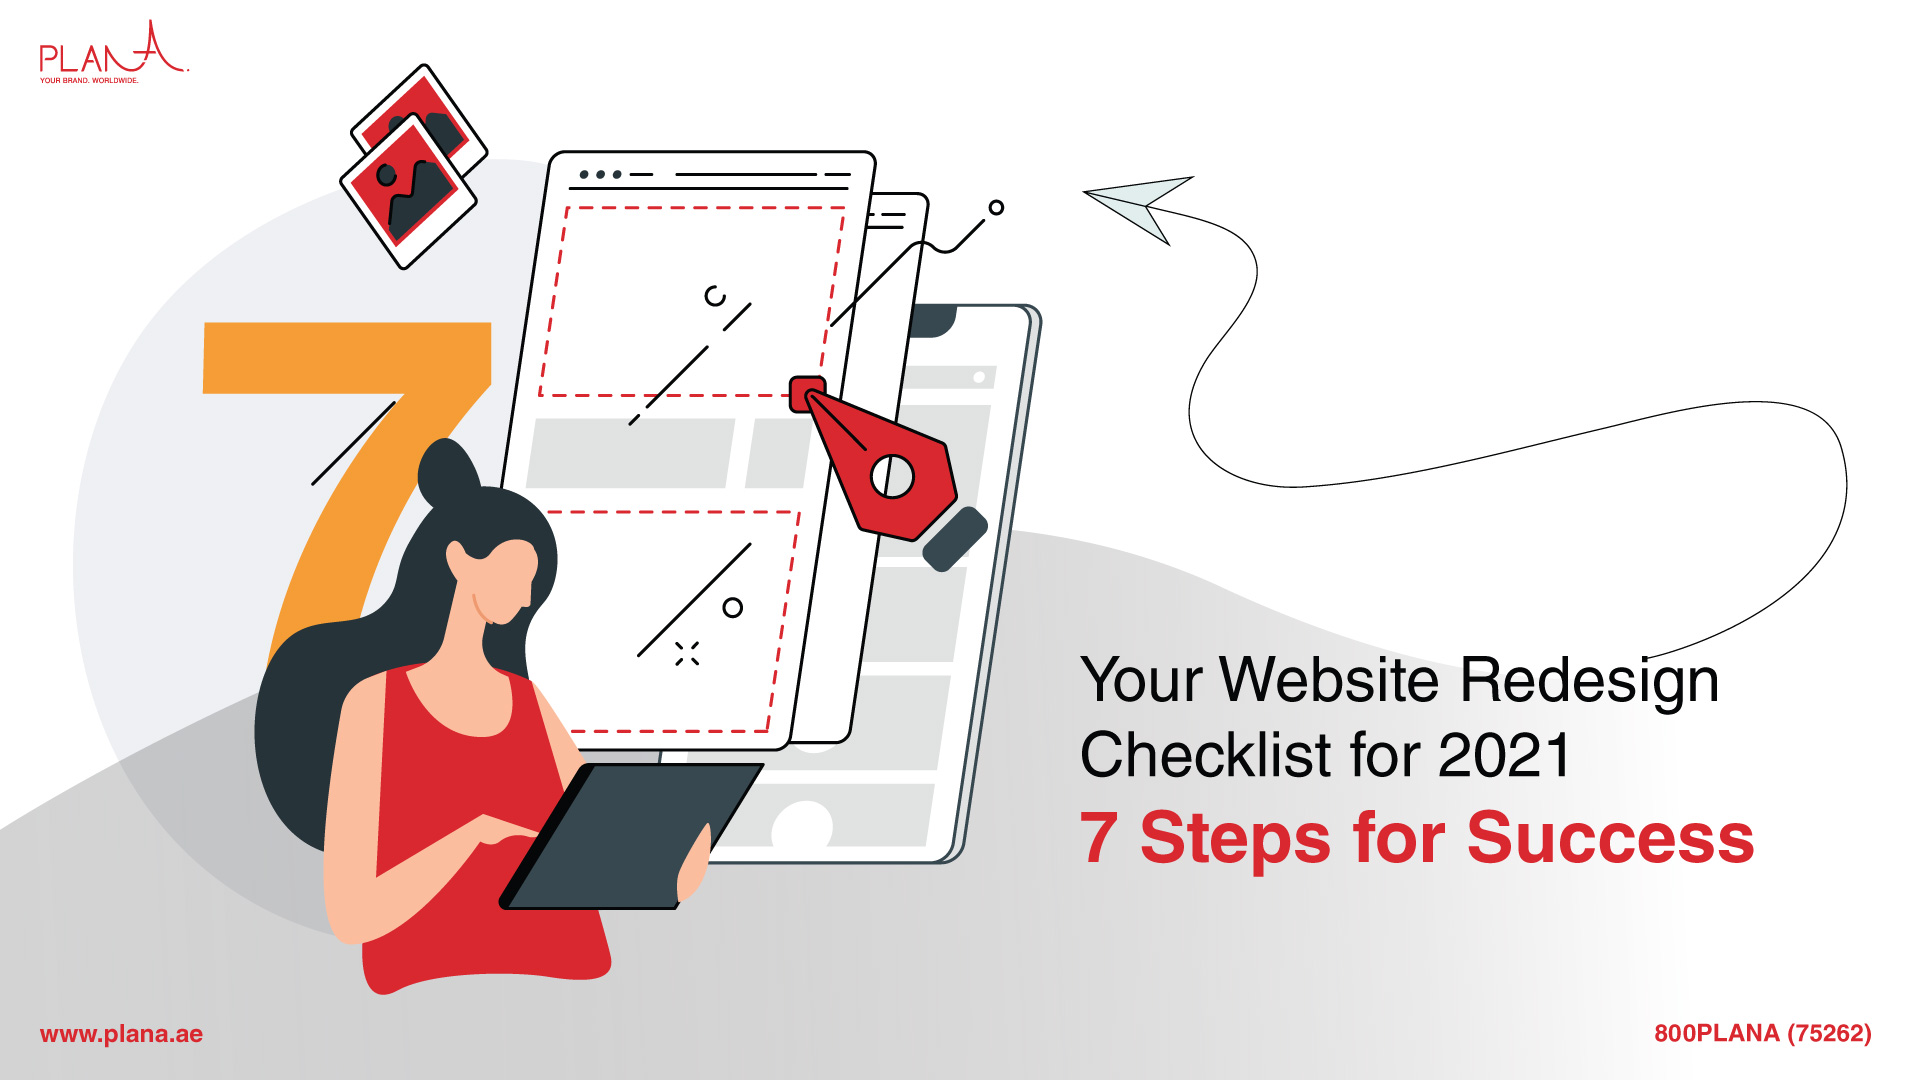 Your Website Redesign Checklist For 2021: 7 Steps for Success